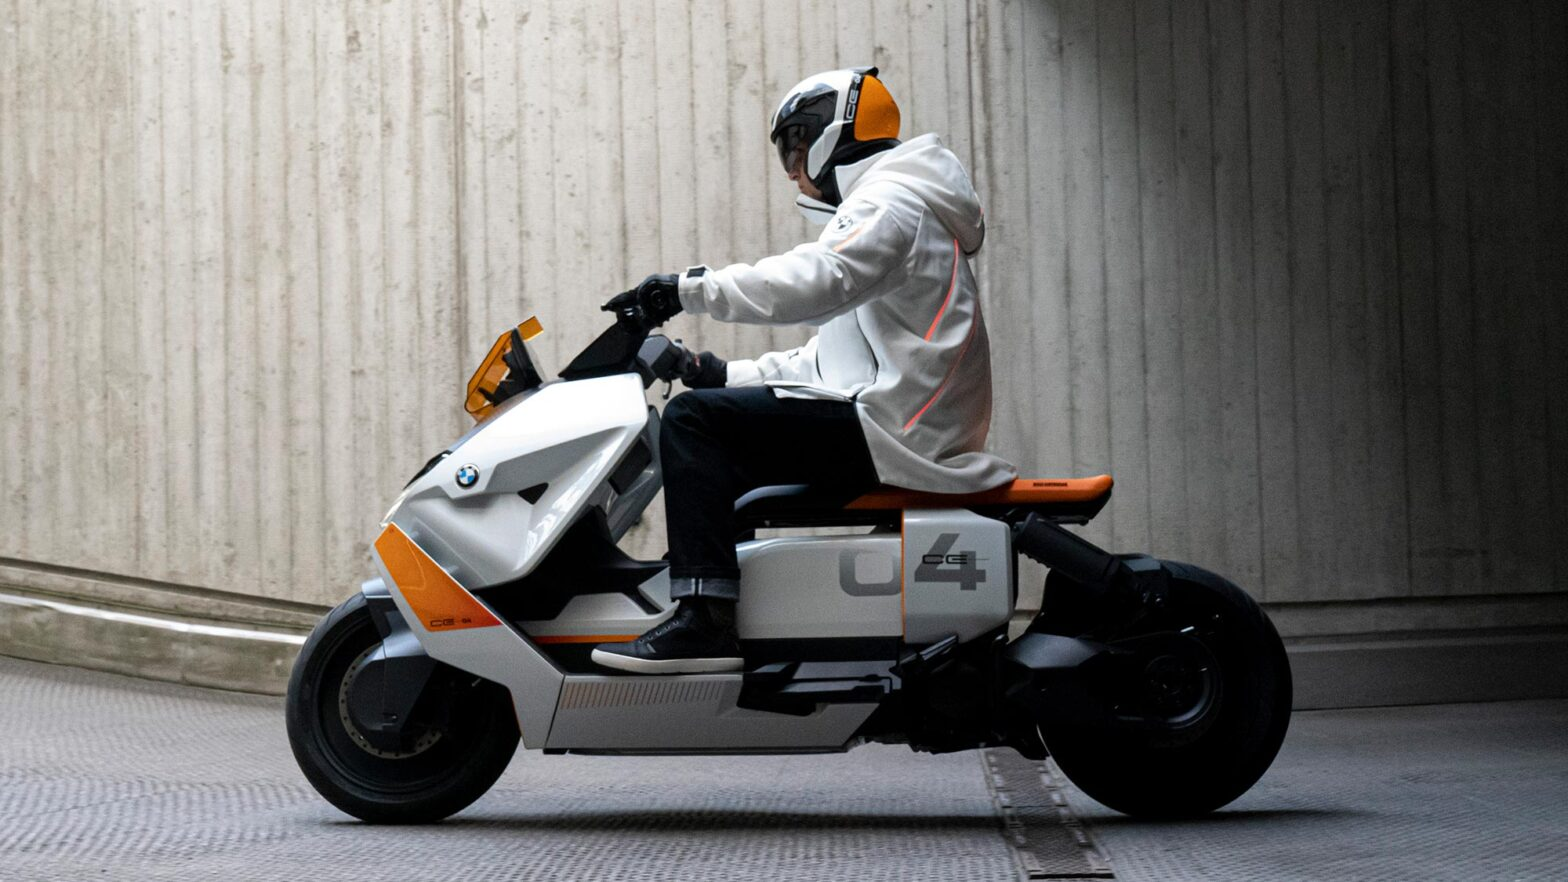 BMW Motorrad Definition CE 04 Electric Maxi-Scooter